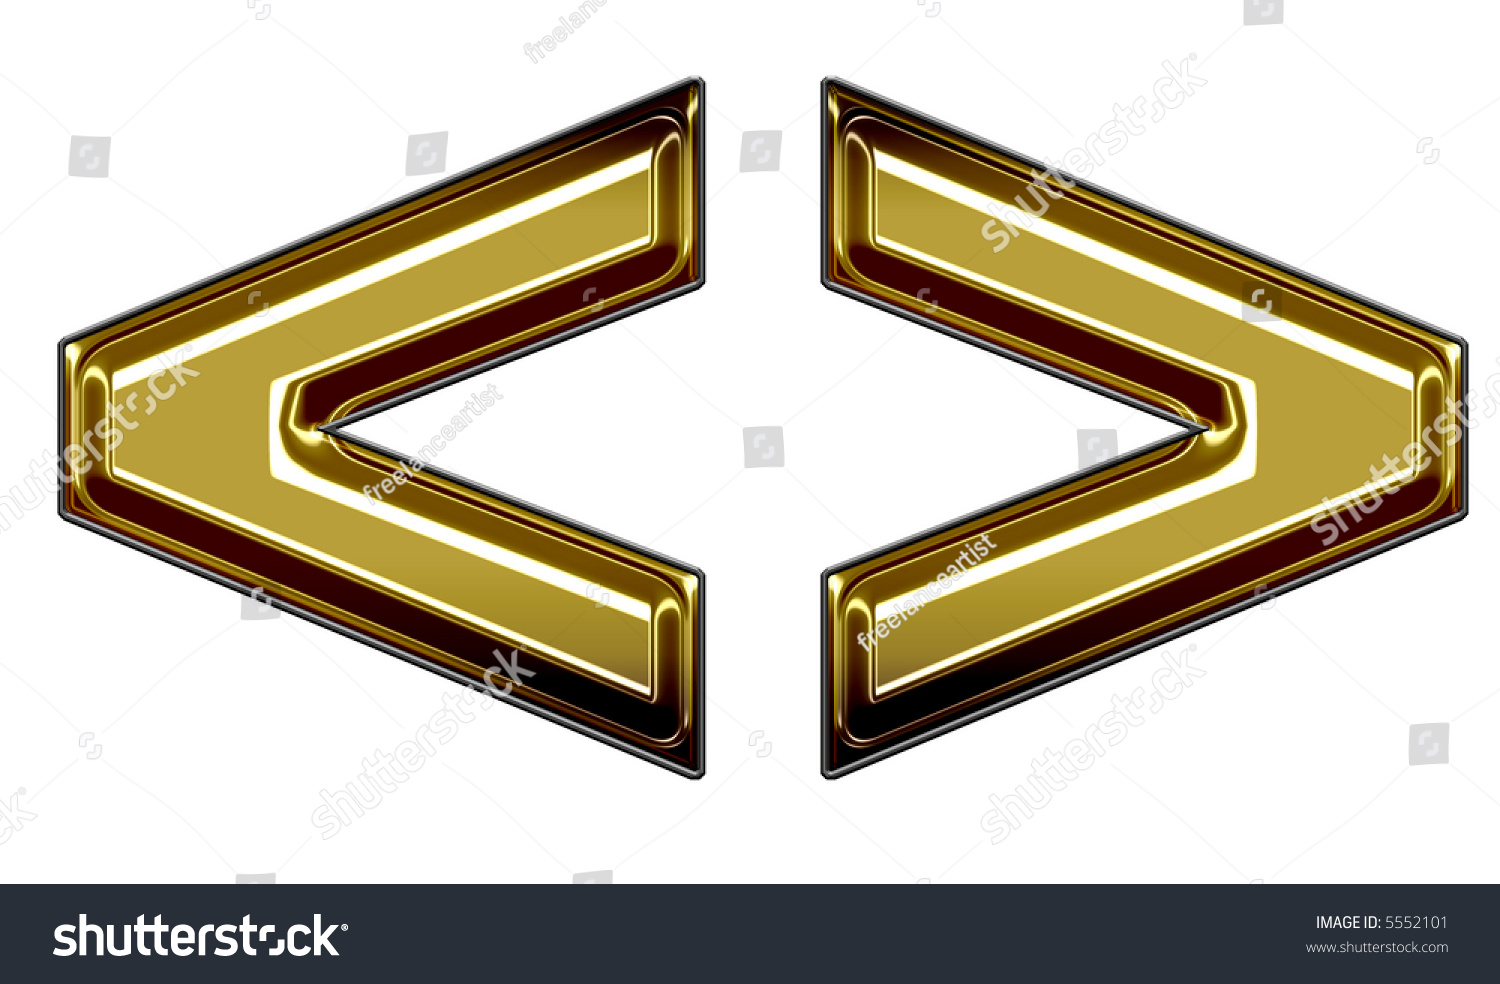 Greater than symbole gallery symbol and sign ideas gold greater than less than stock illustration 5552101 shutterstock gold greater than less than buycottarizona gallery buycottarizona Choice Image